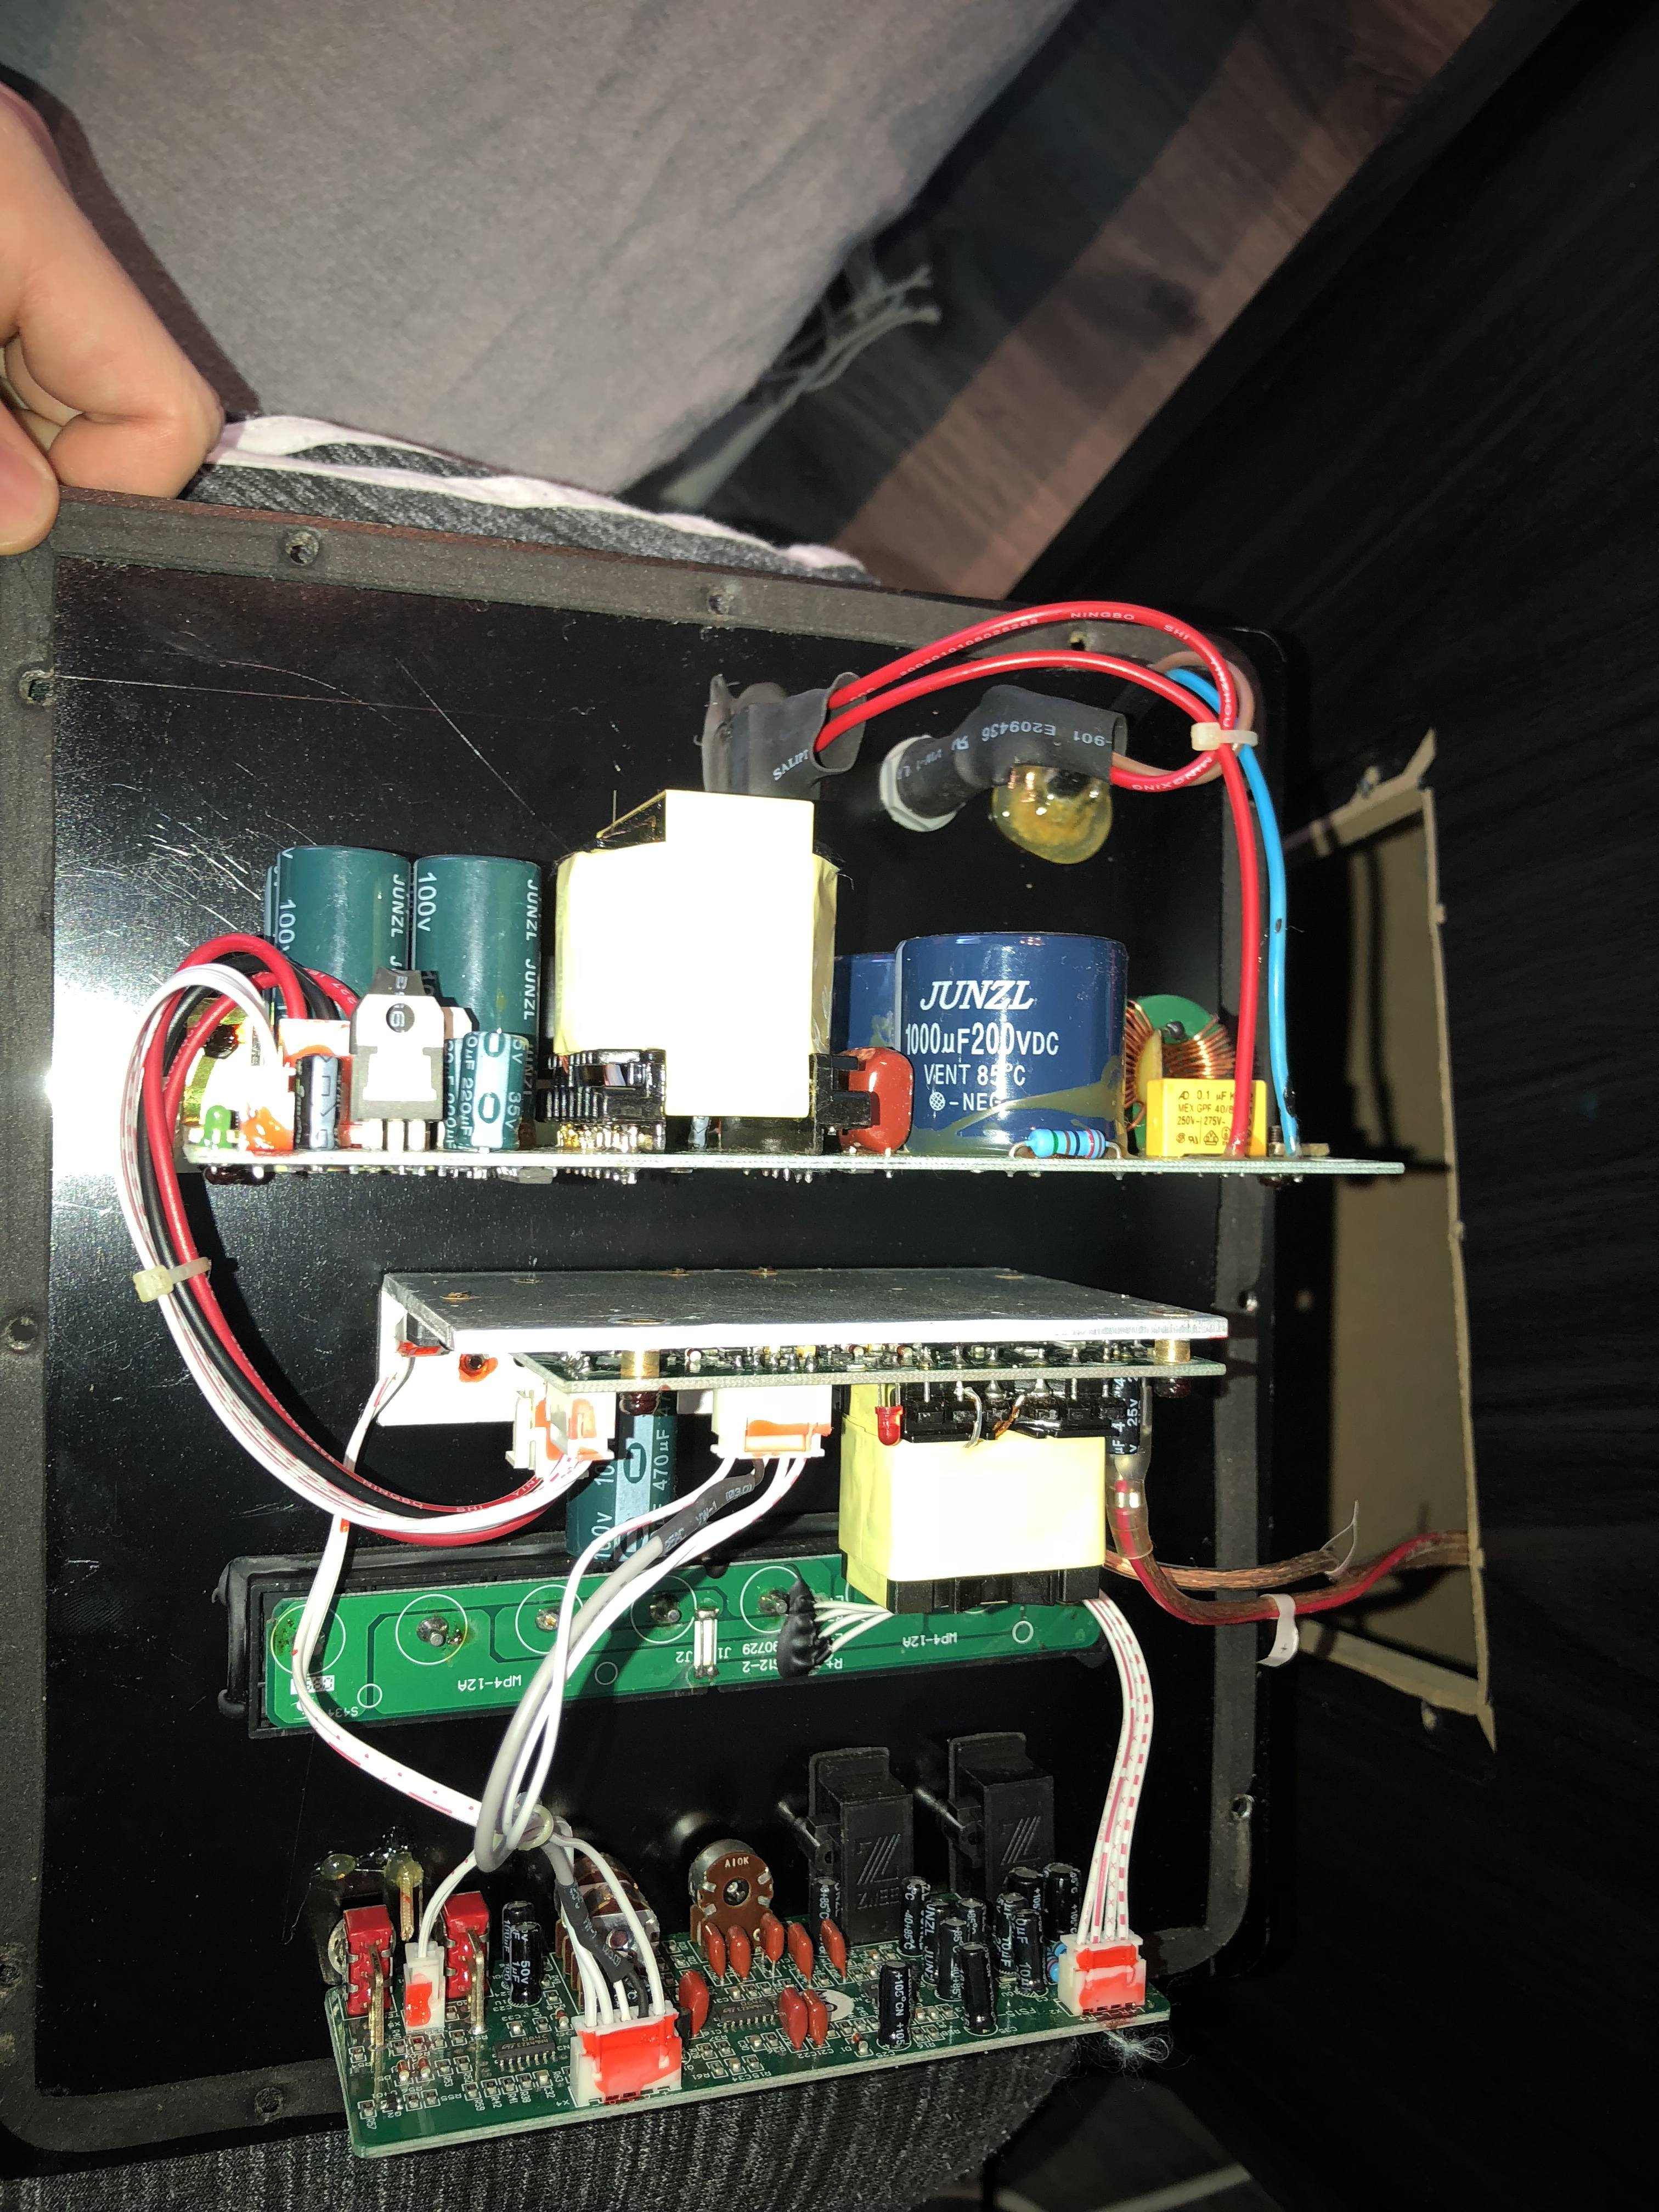 Fence Audio 15 Subwoofer not recieving power - Home Theater